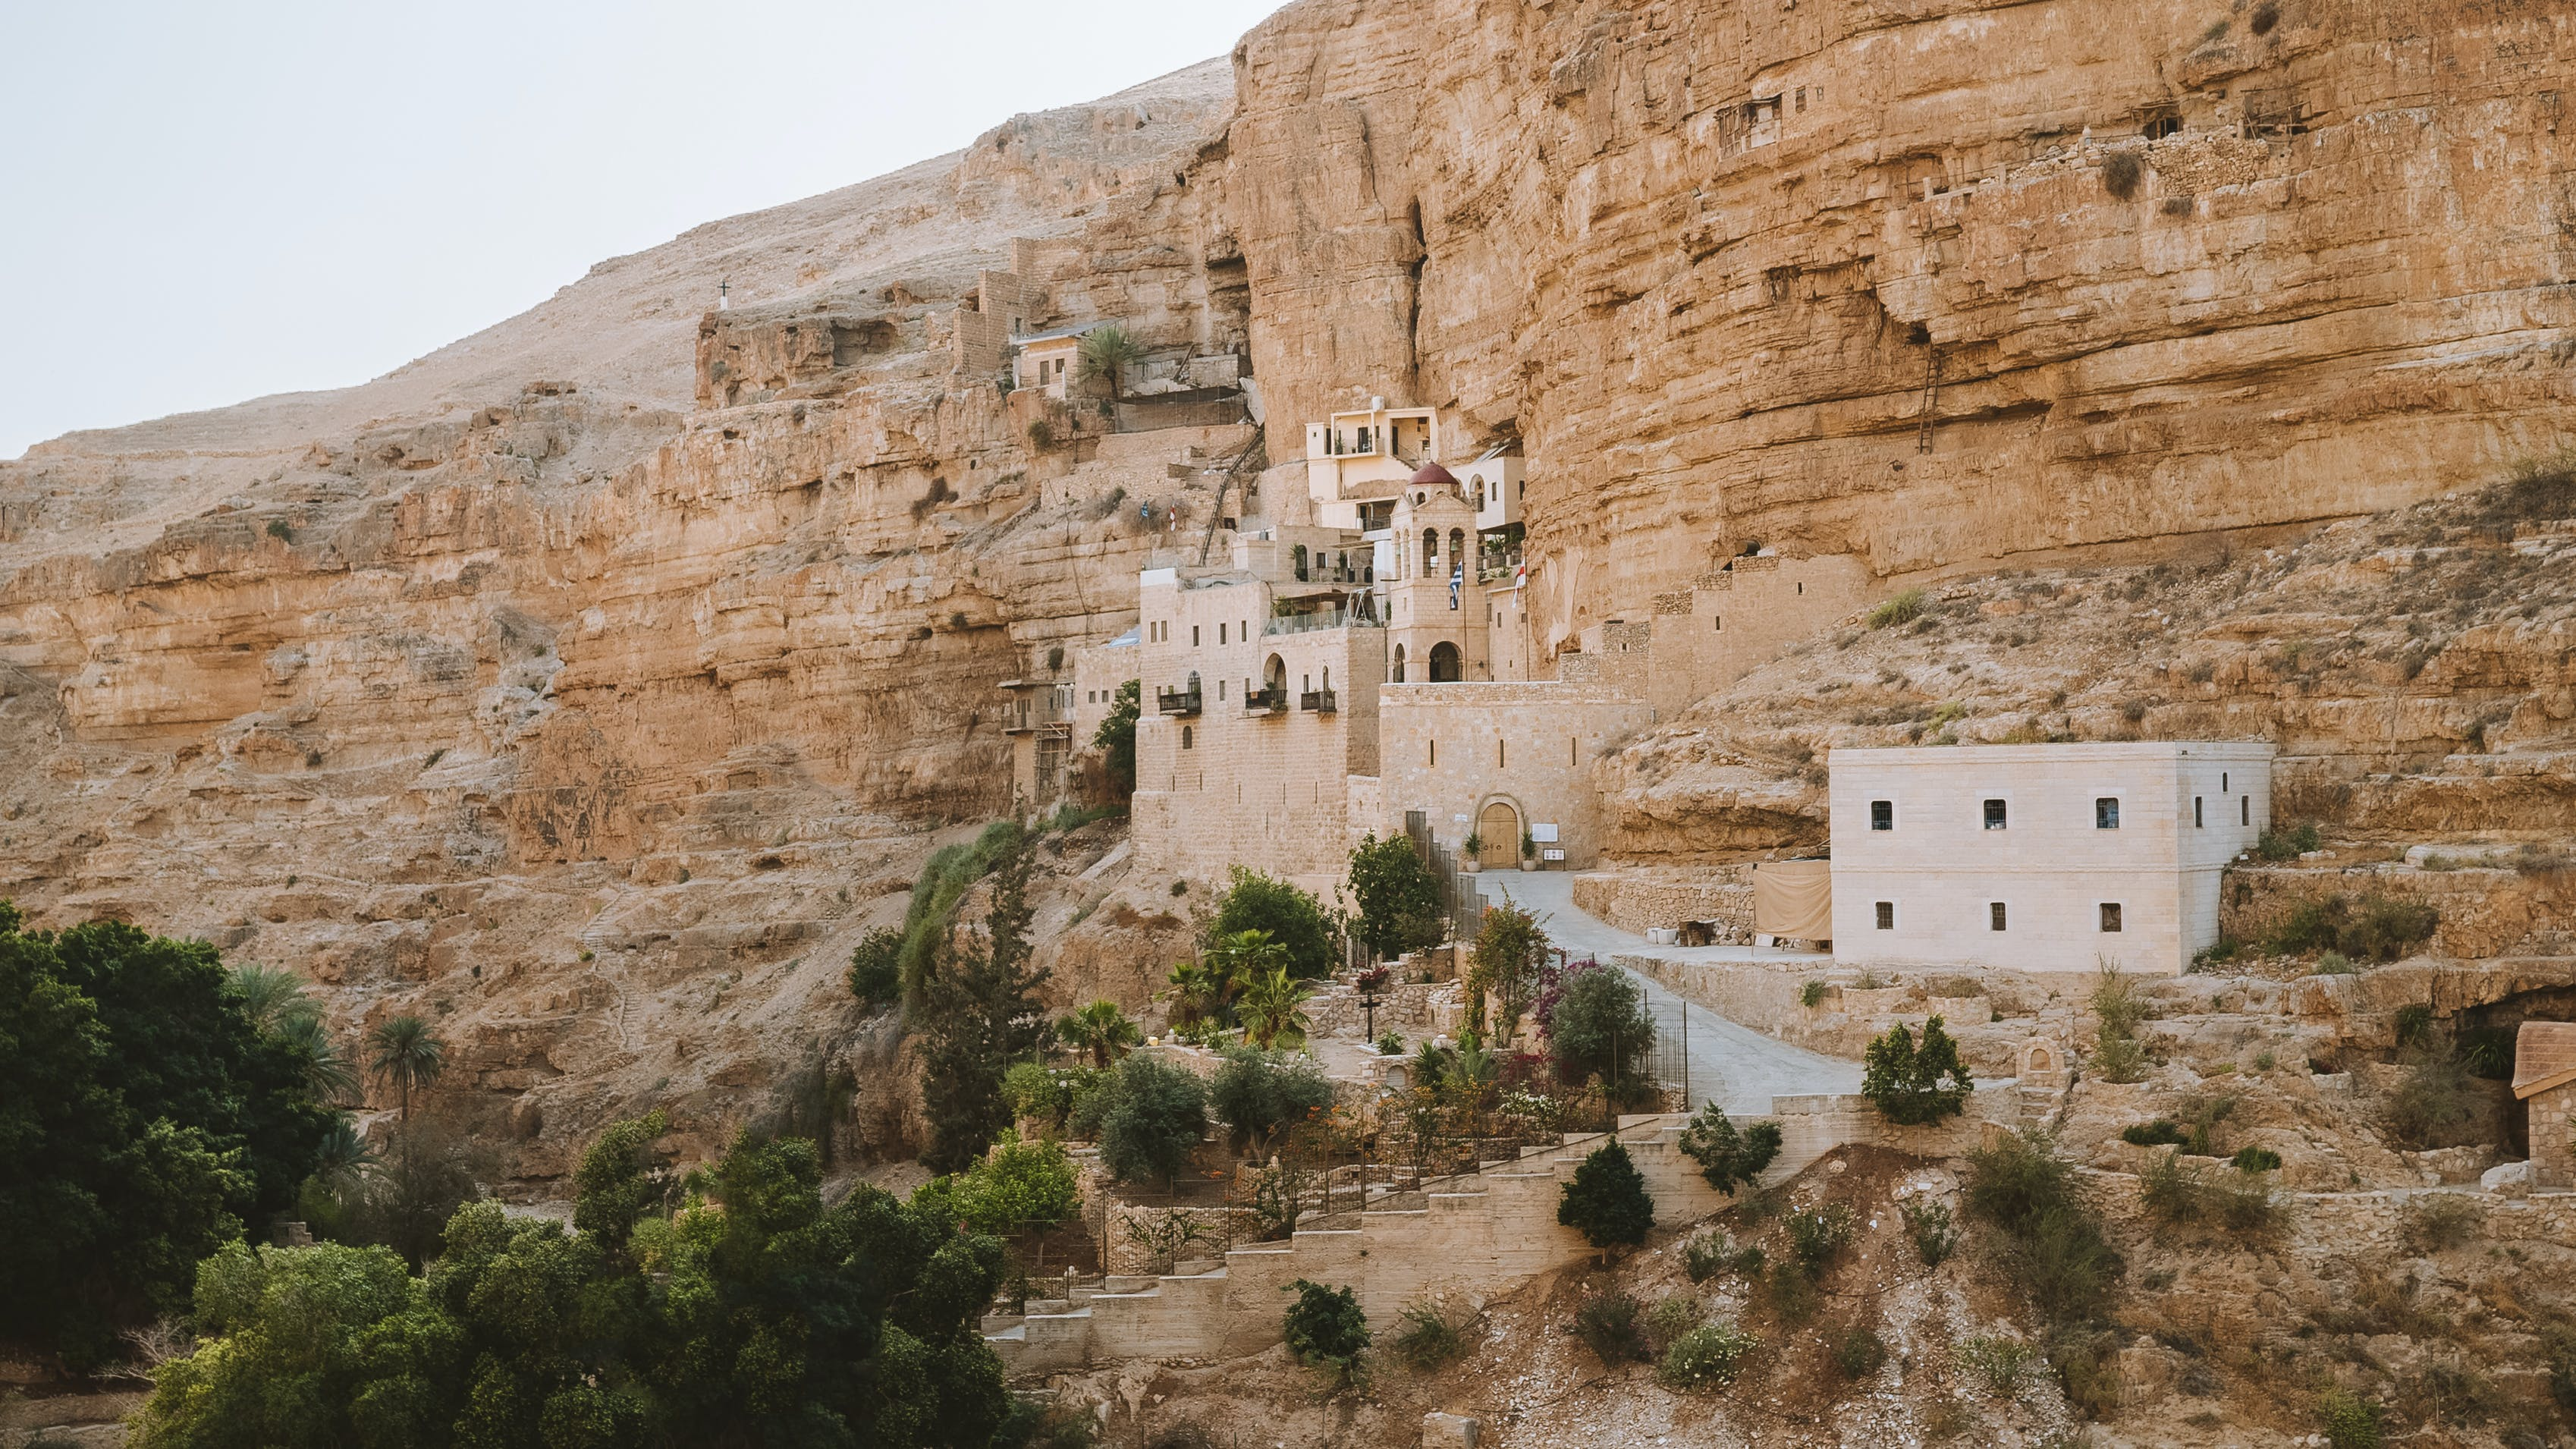 Free stock photo of chapel, desert, Middle east, monastery